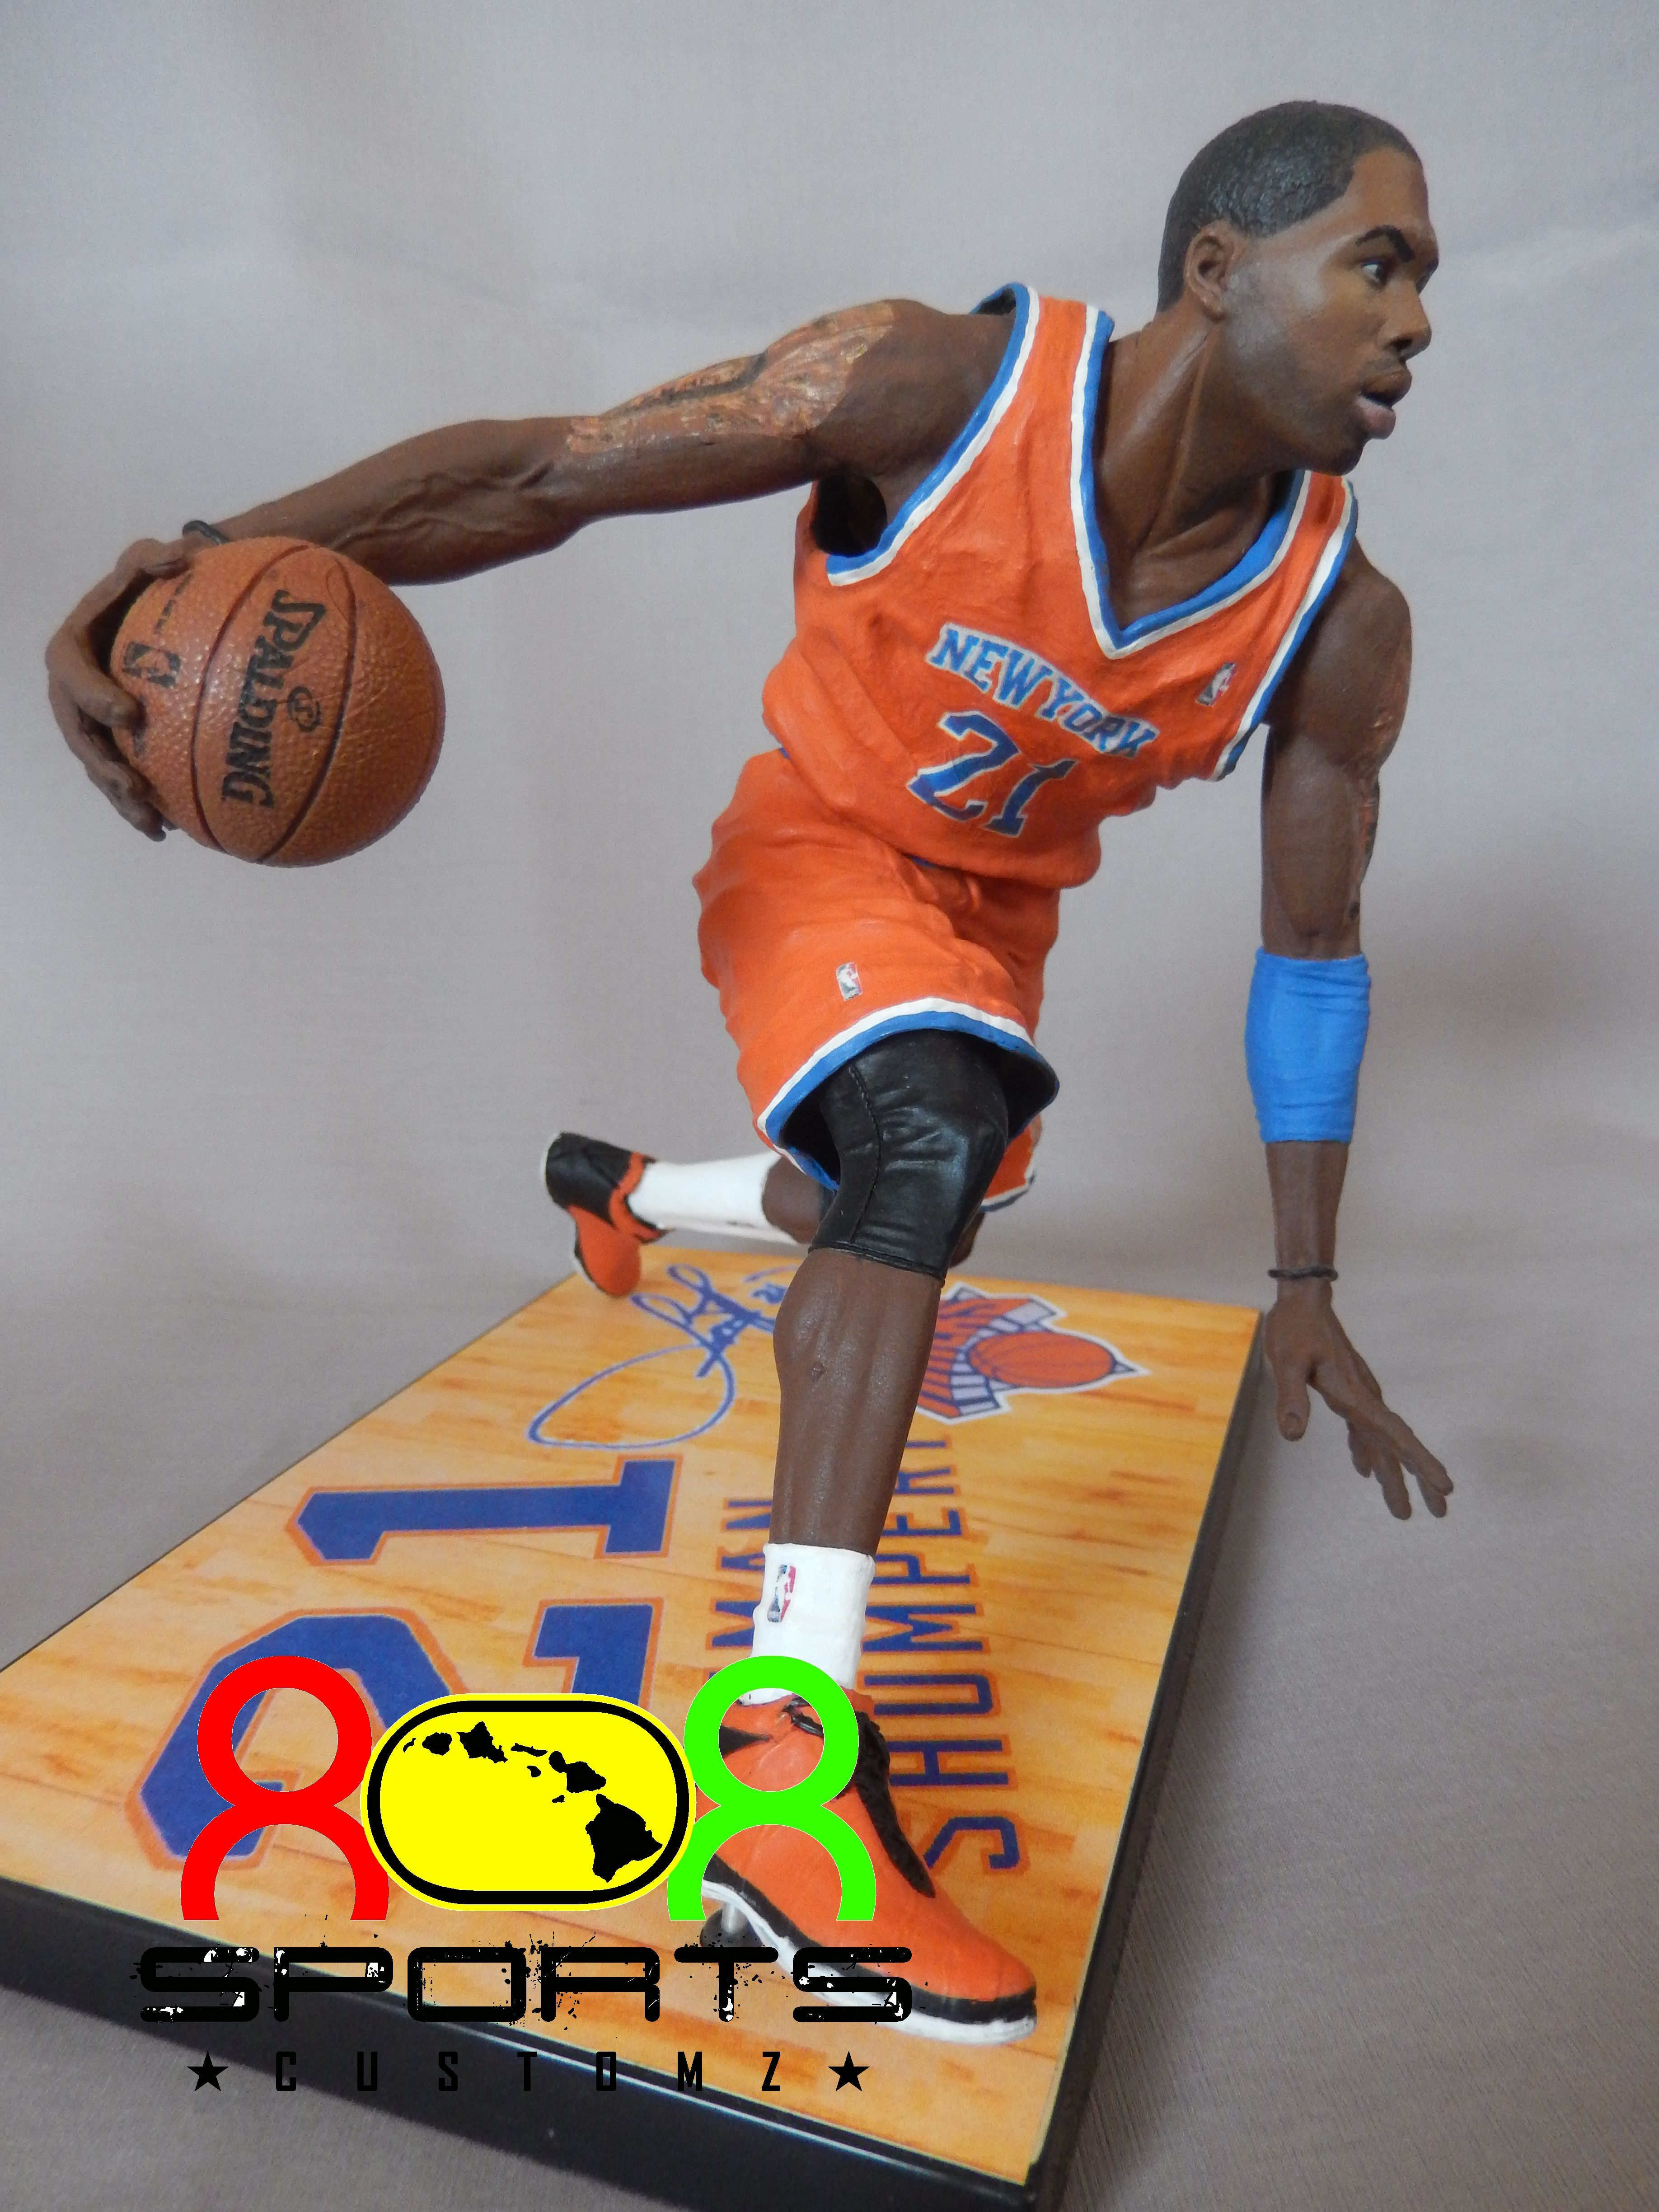 da4b7025ca41 Iman Shumpert - 808 Sports Customz